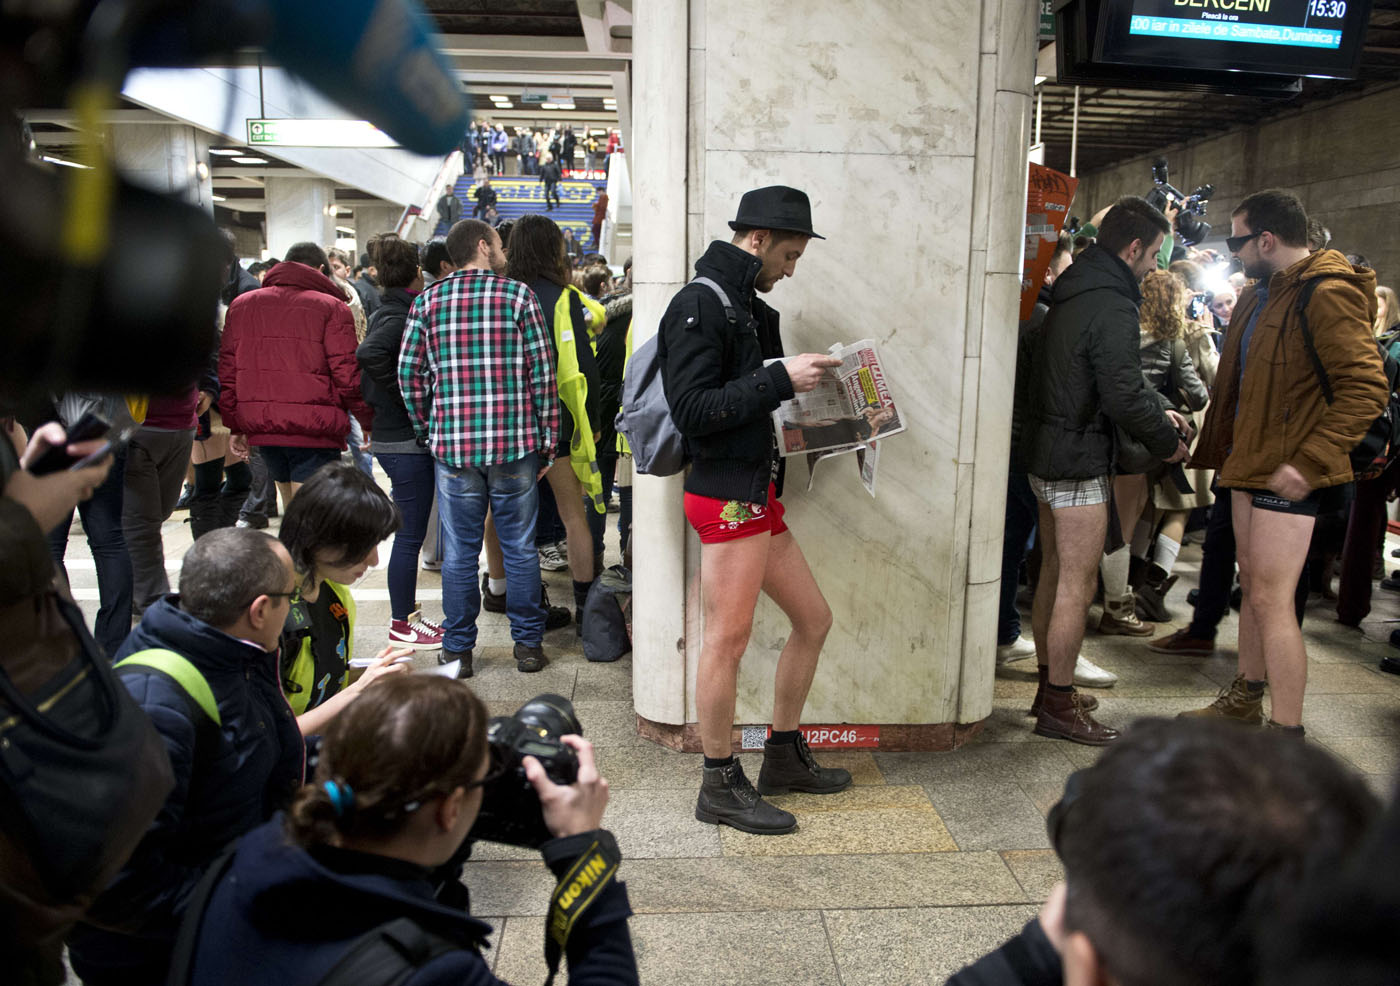 In case you missed it: Photos from No Pants Subway Ride